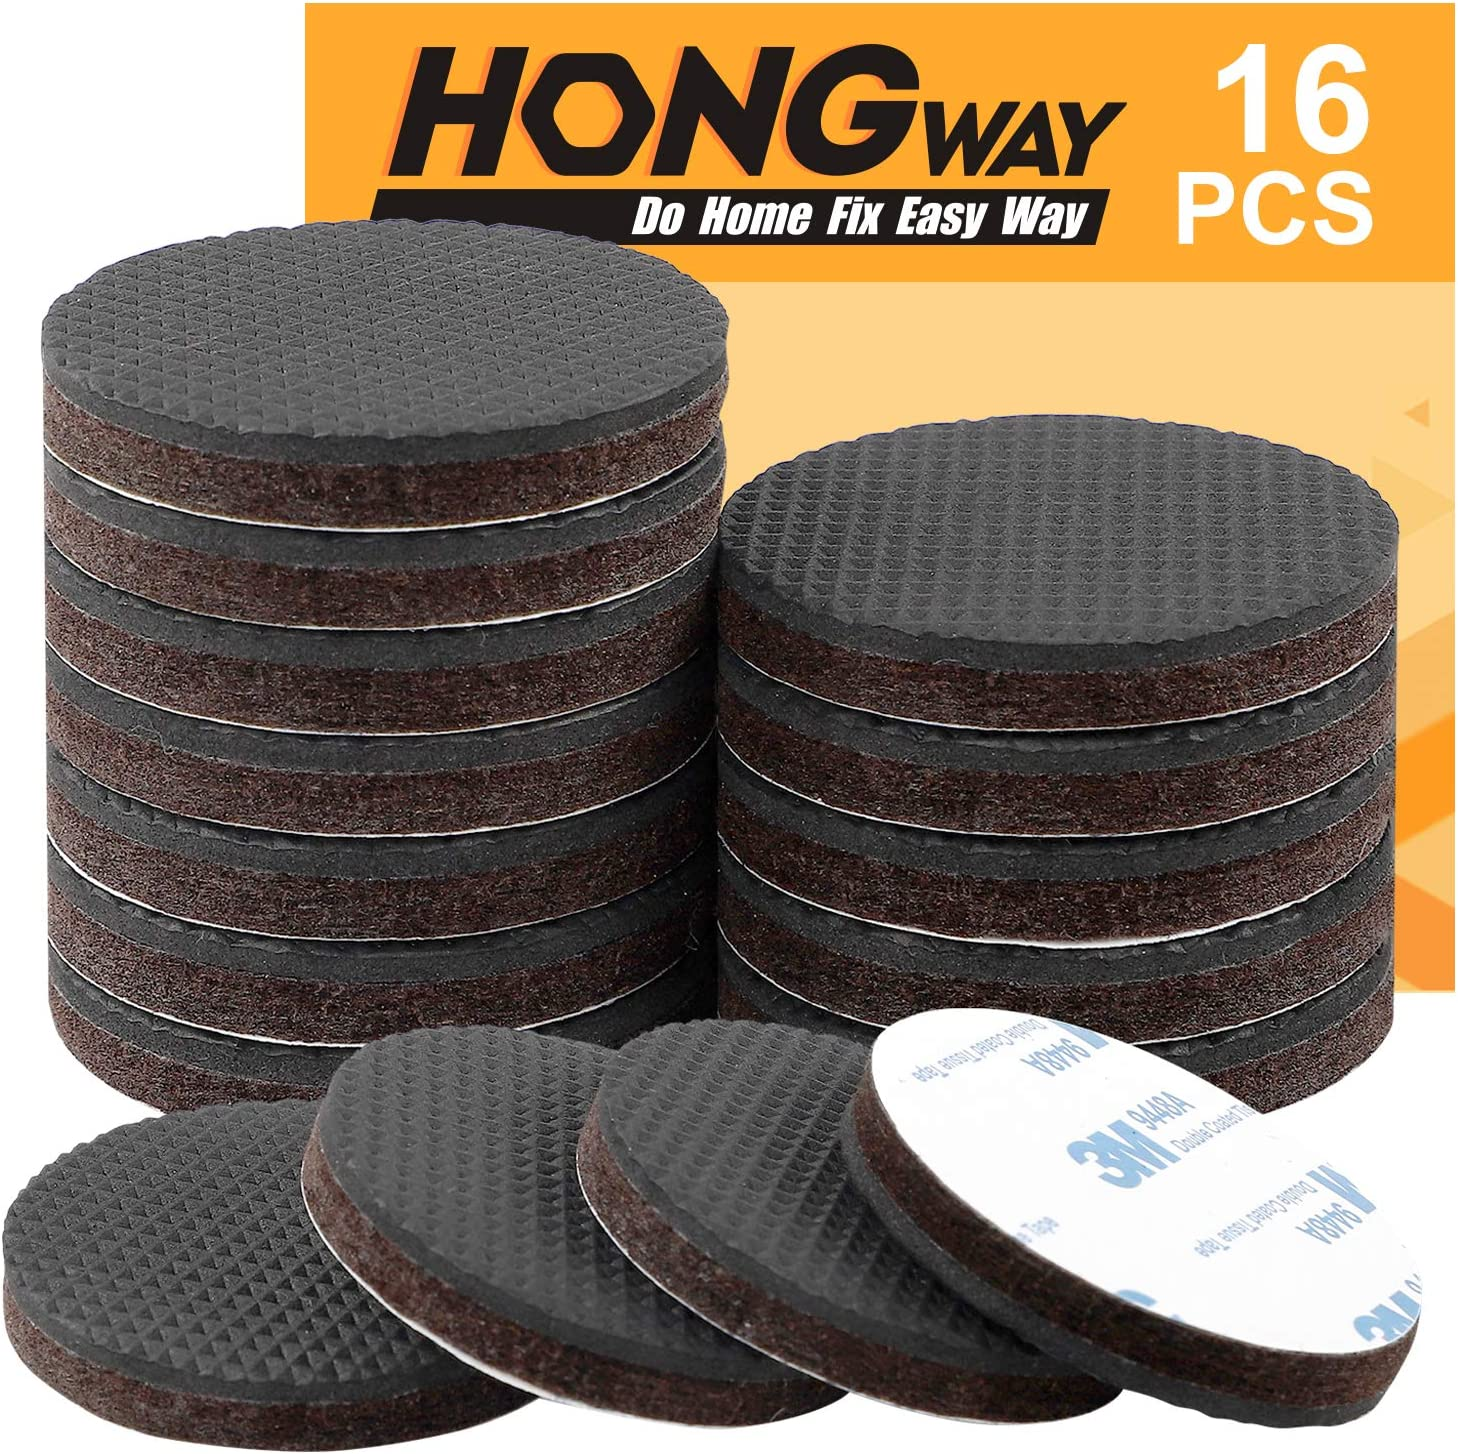 HongWay 16pcs Non Slip Felt Furniture Pads 2 Inch Round for Protecting Floor, Self-Adhesive Anti Slip Felt Rubber Pads, Hard Floor Protector Furniture Stopper for Fixation in Place Furniture